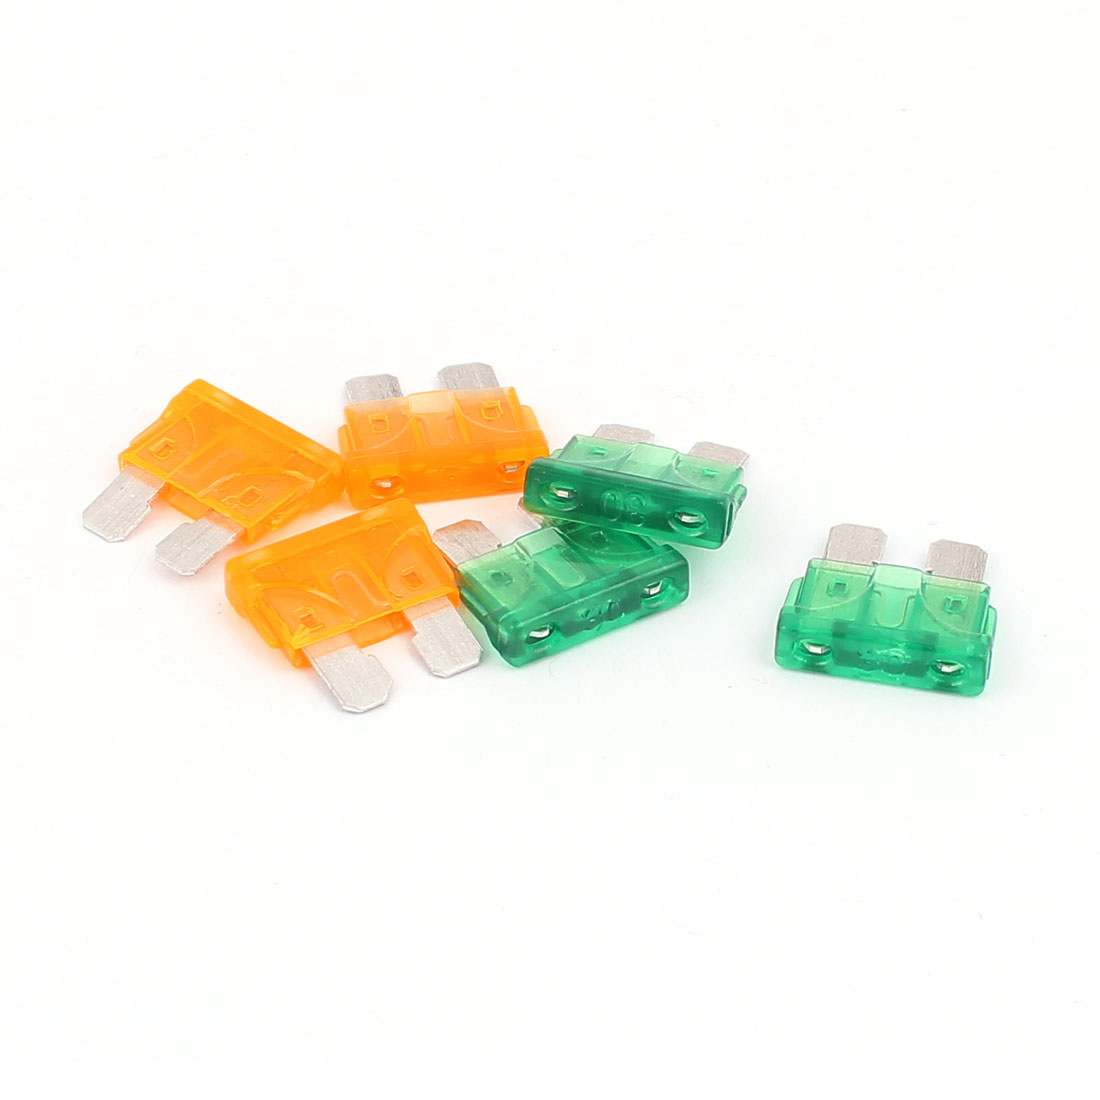 6pcs Motorbike Car Vehicle Caravan SUV Boat ATC ATO Mini Blade Fuses 30A 5A Orange Green